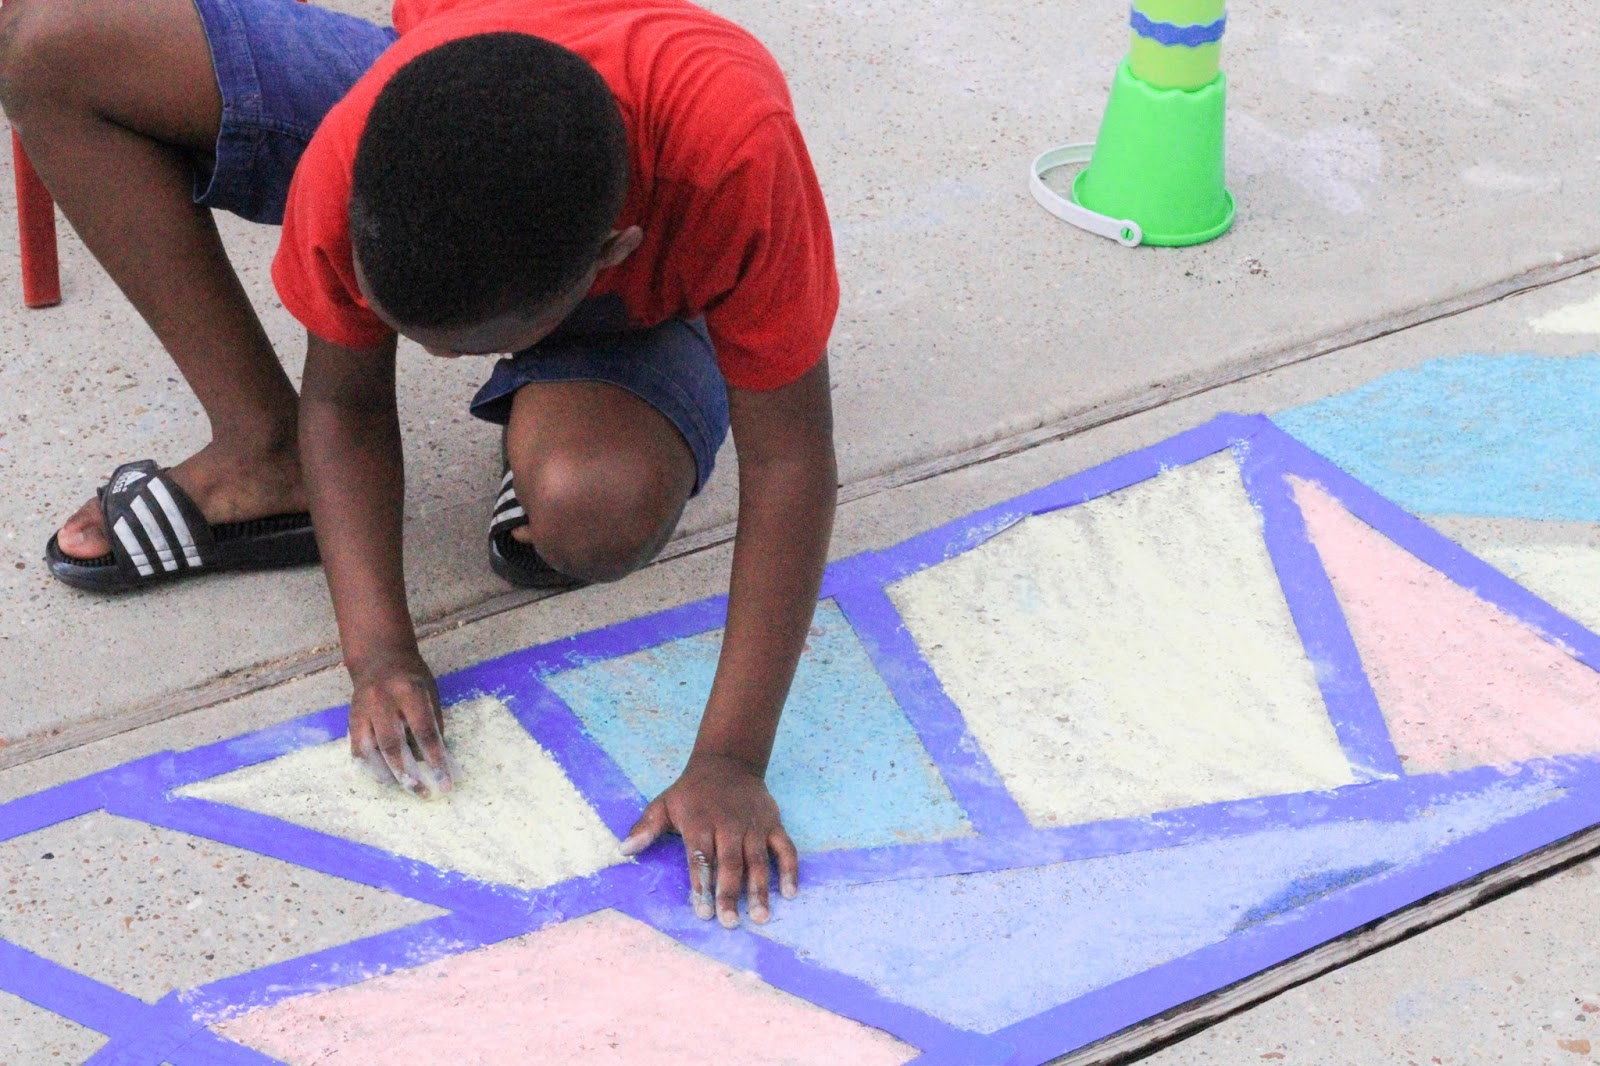 Sidewalk chart art with painters tape